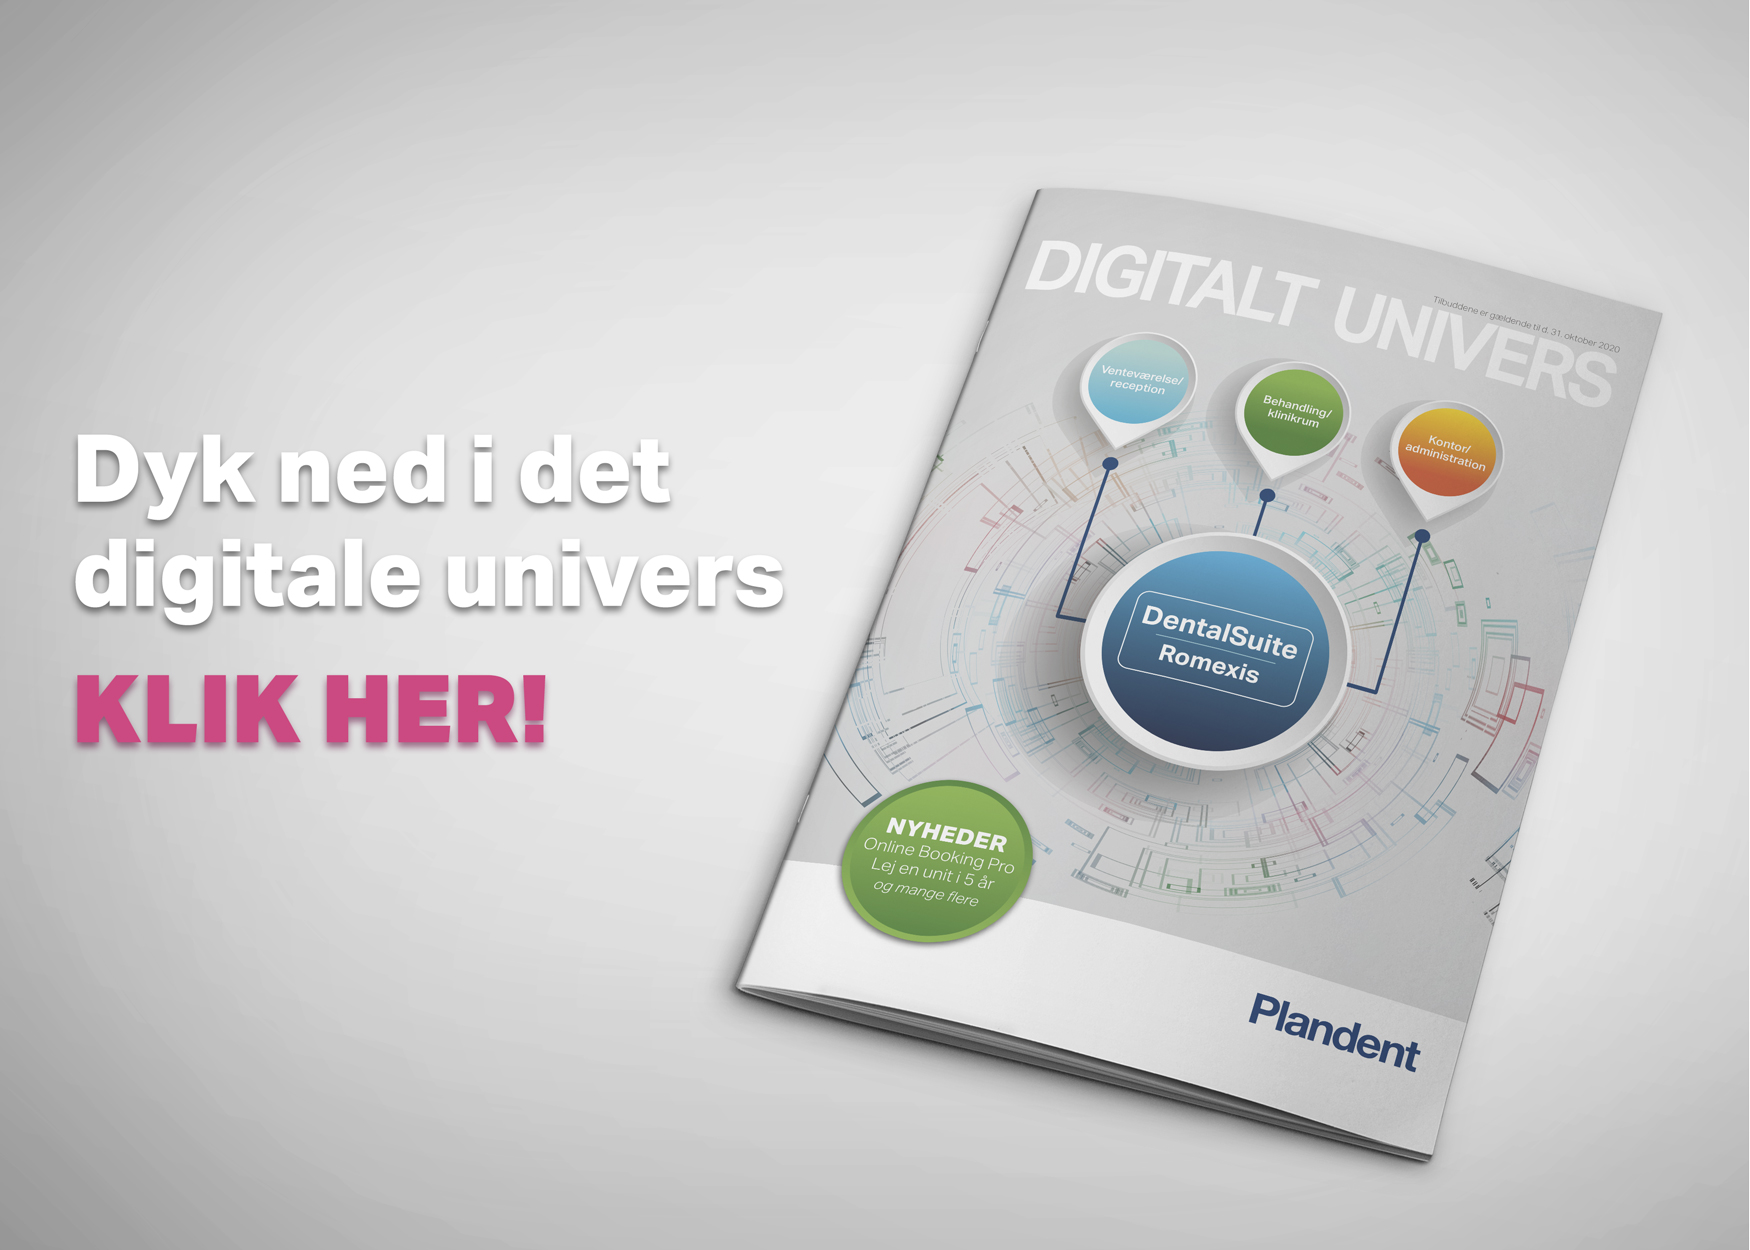 Plandent Digitalt Univers - september 2020